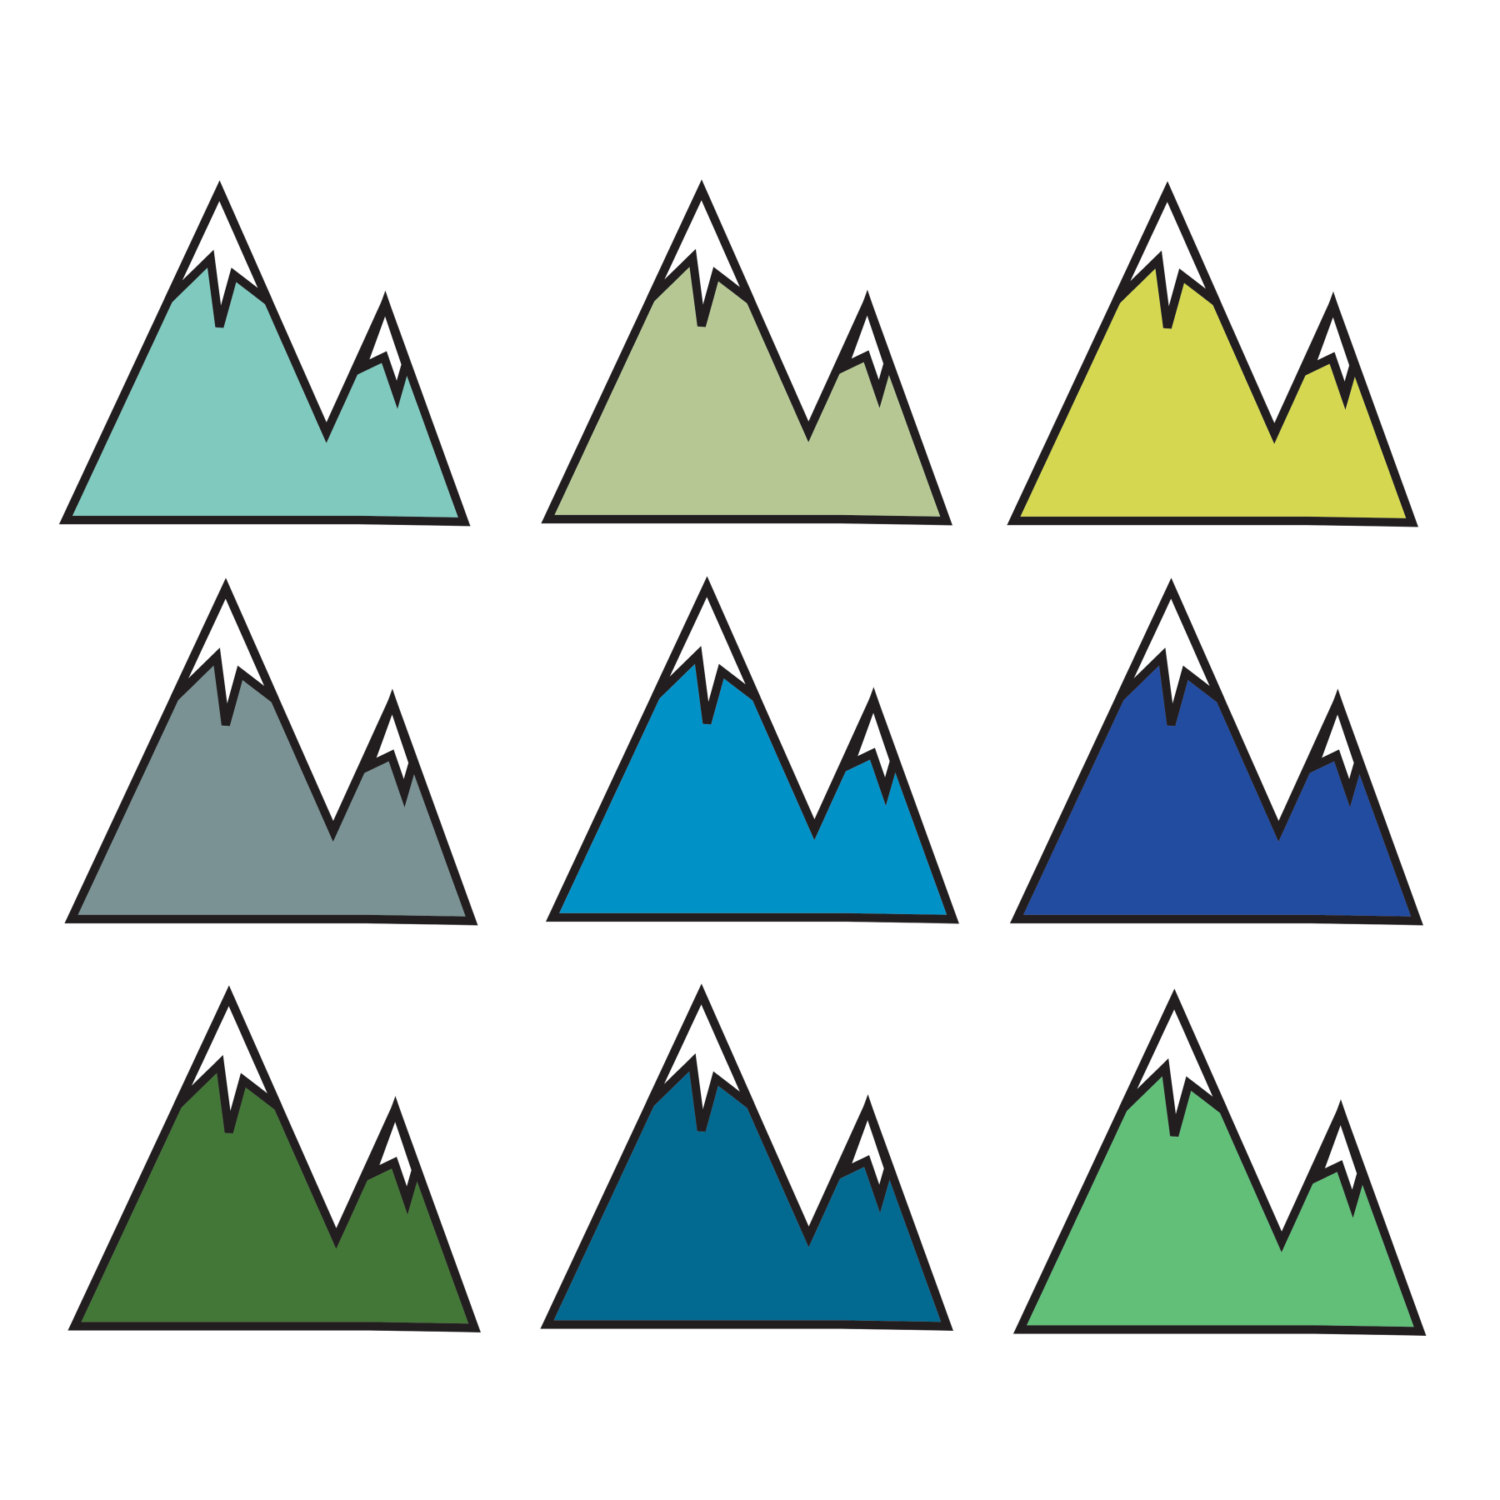 1500x1500 Mountains Mountain Clipart Black And White Free Images 2